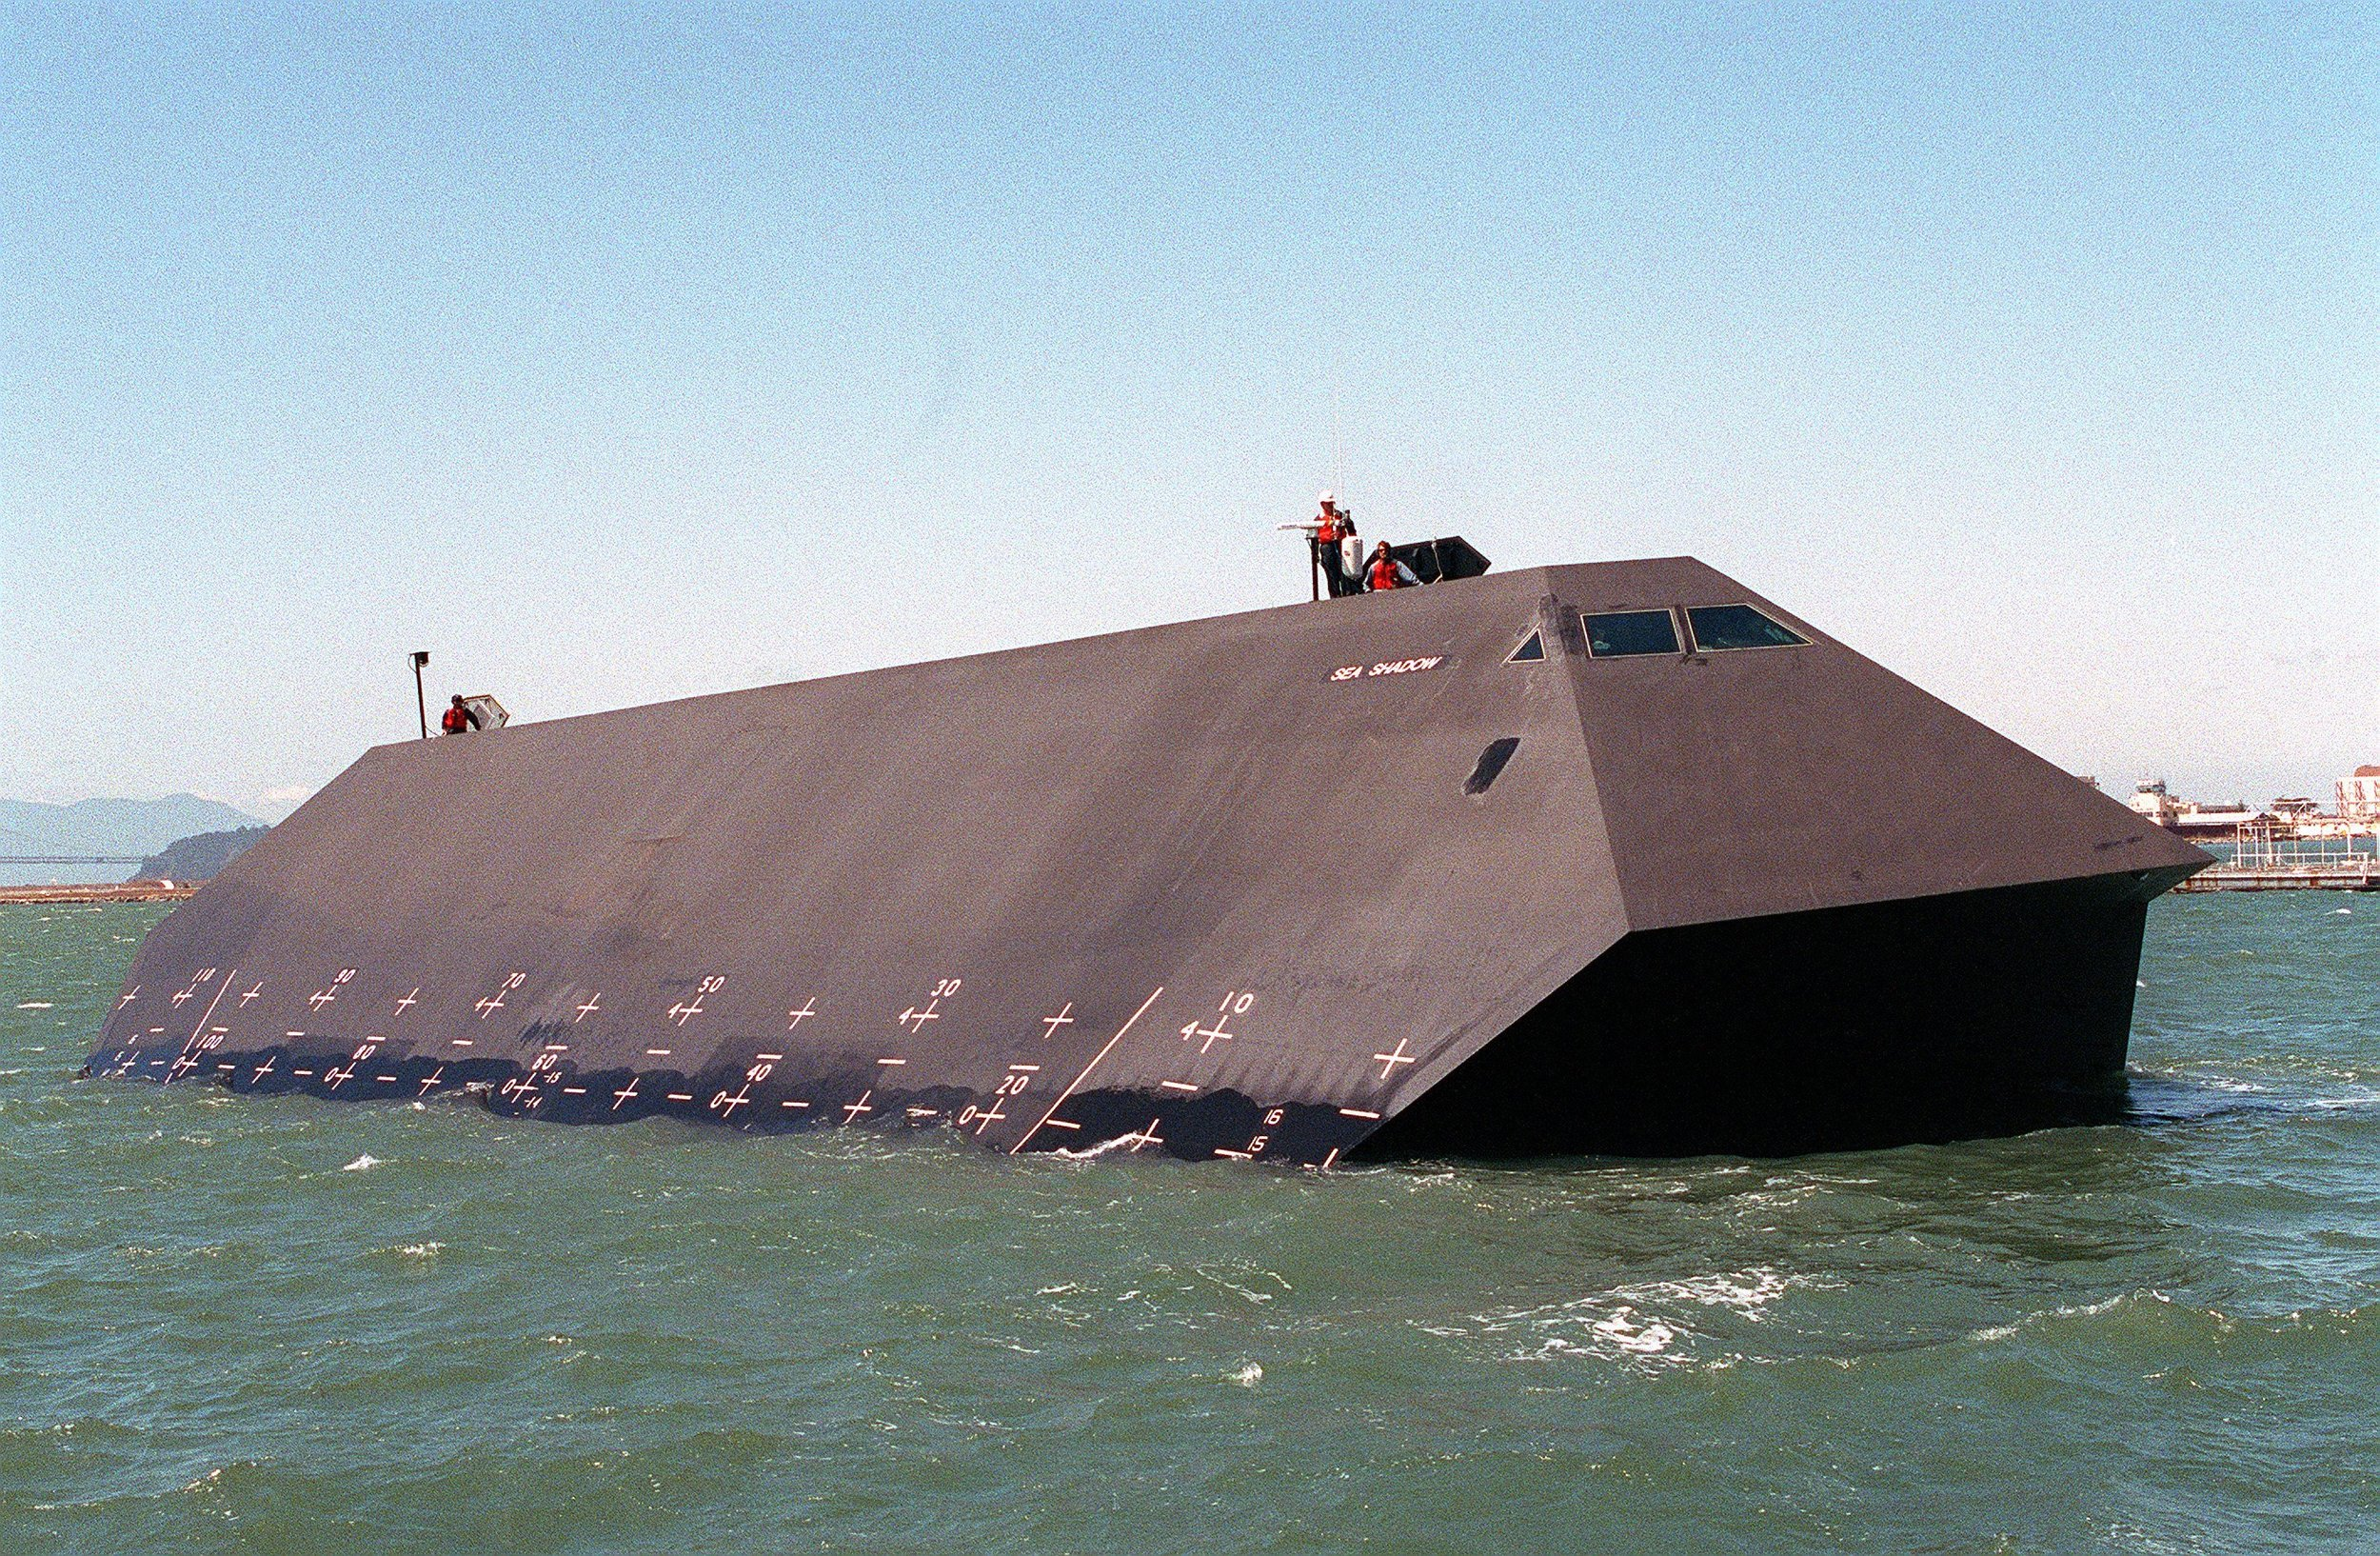 stealth ship sea shadow.jpg